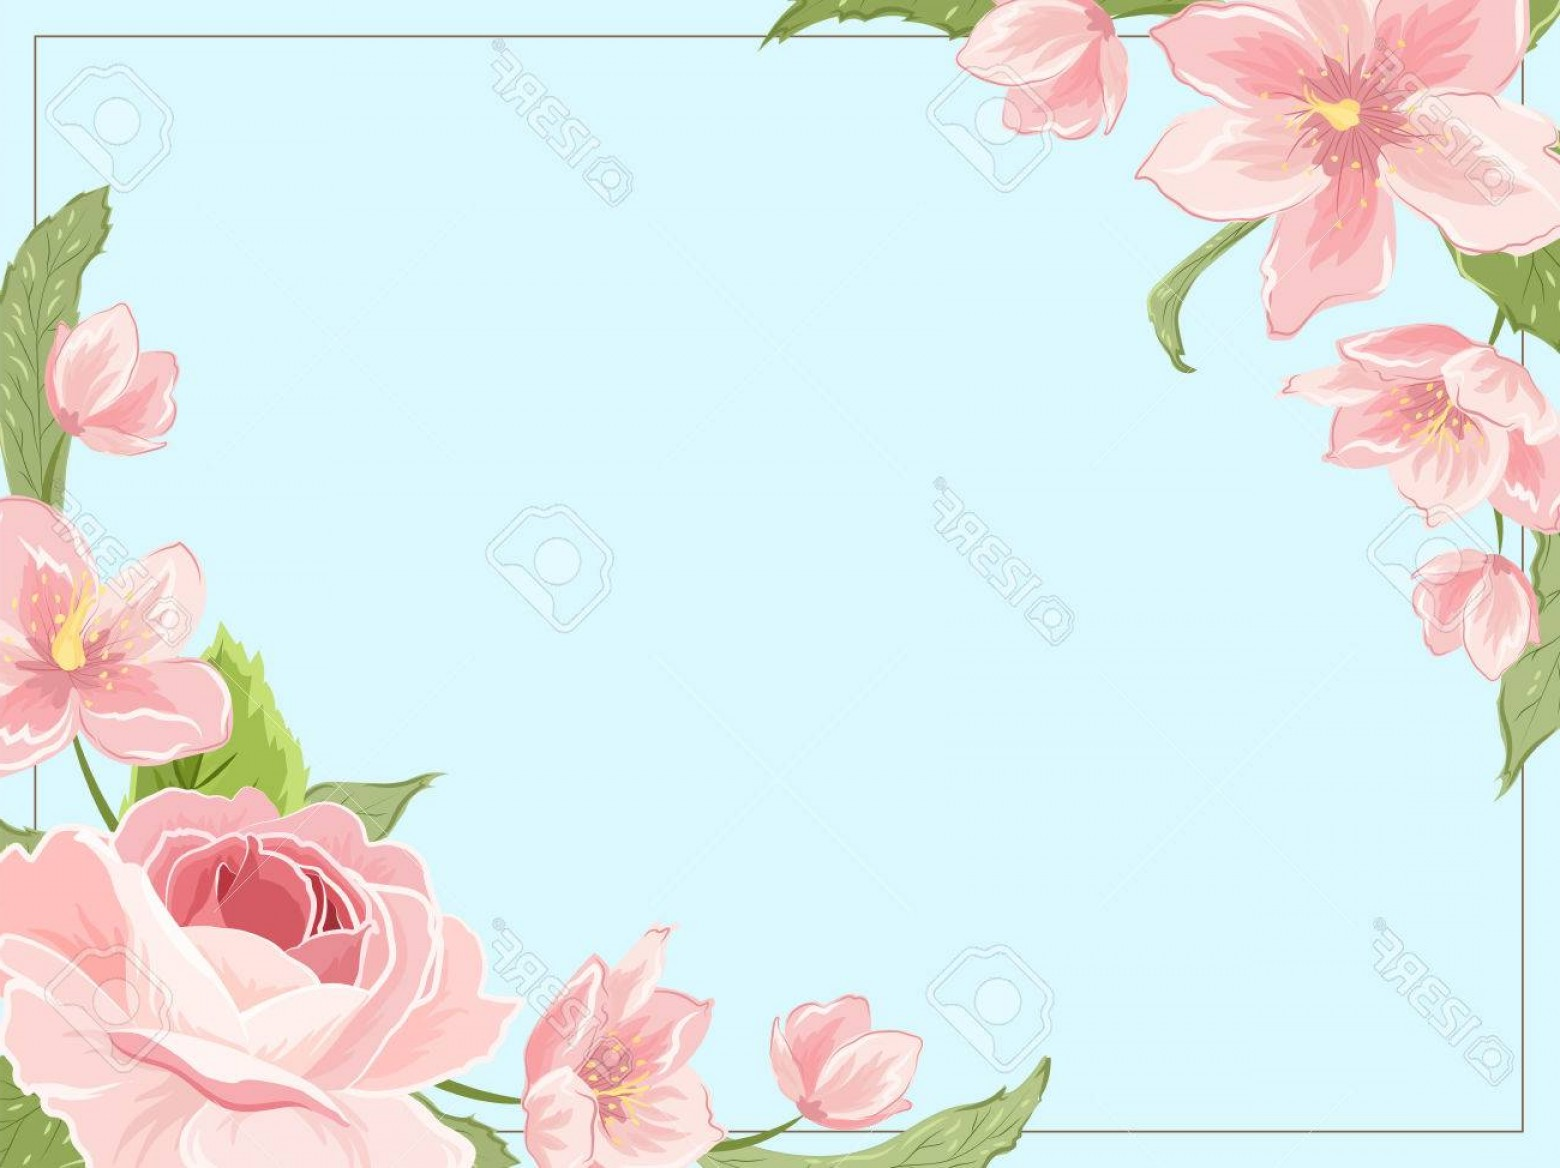 Blue Vector Border Frame: Photostock Vector Border Frame Template Corners Decorated With Pink Rose Magnolia Sakura Hellebore Flowers On Blue Bac